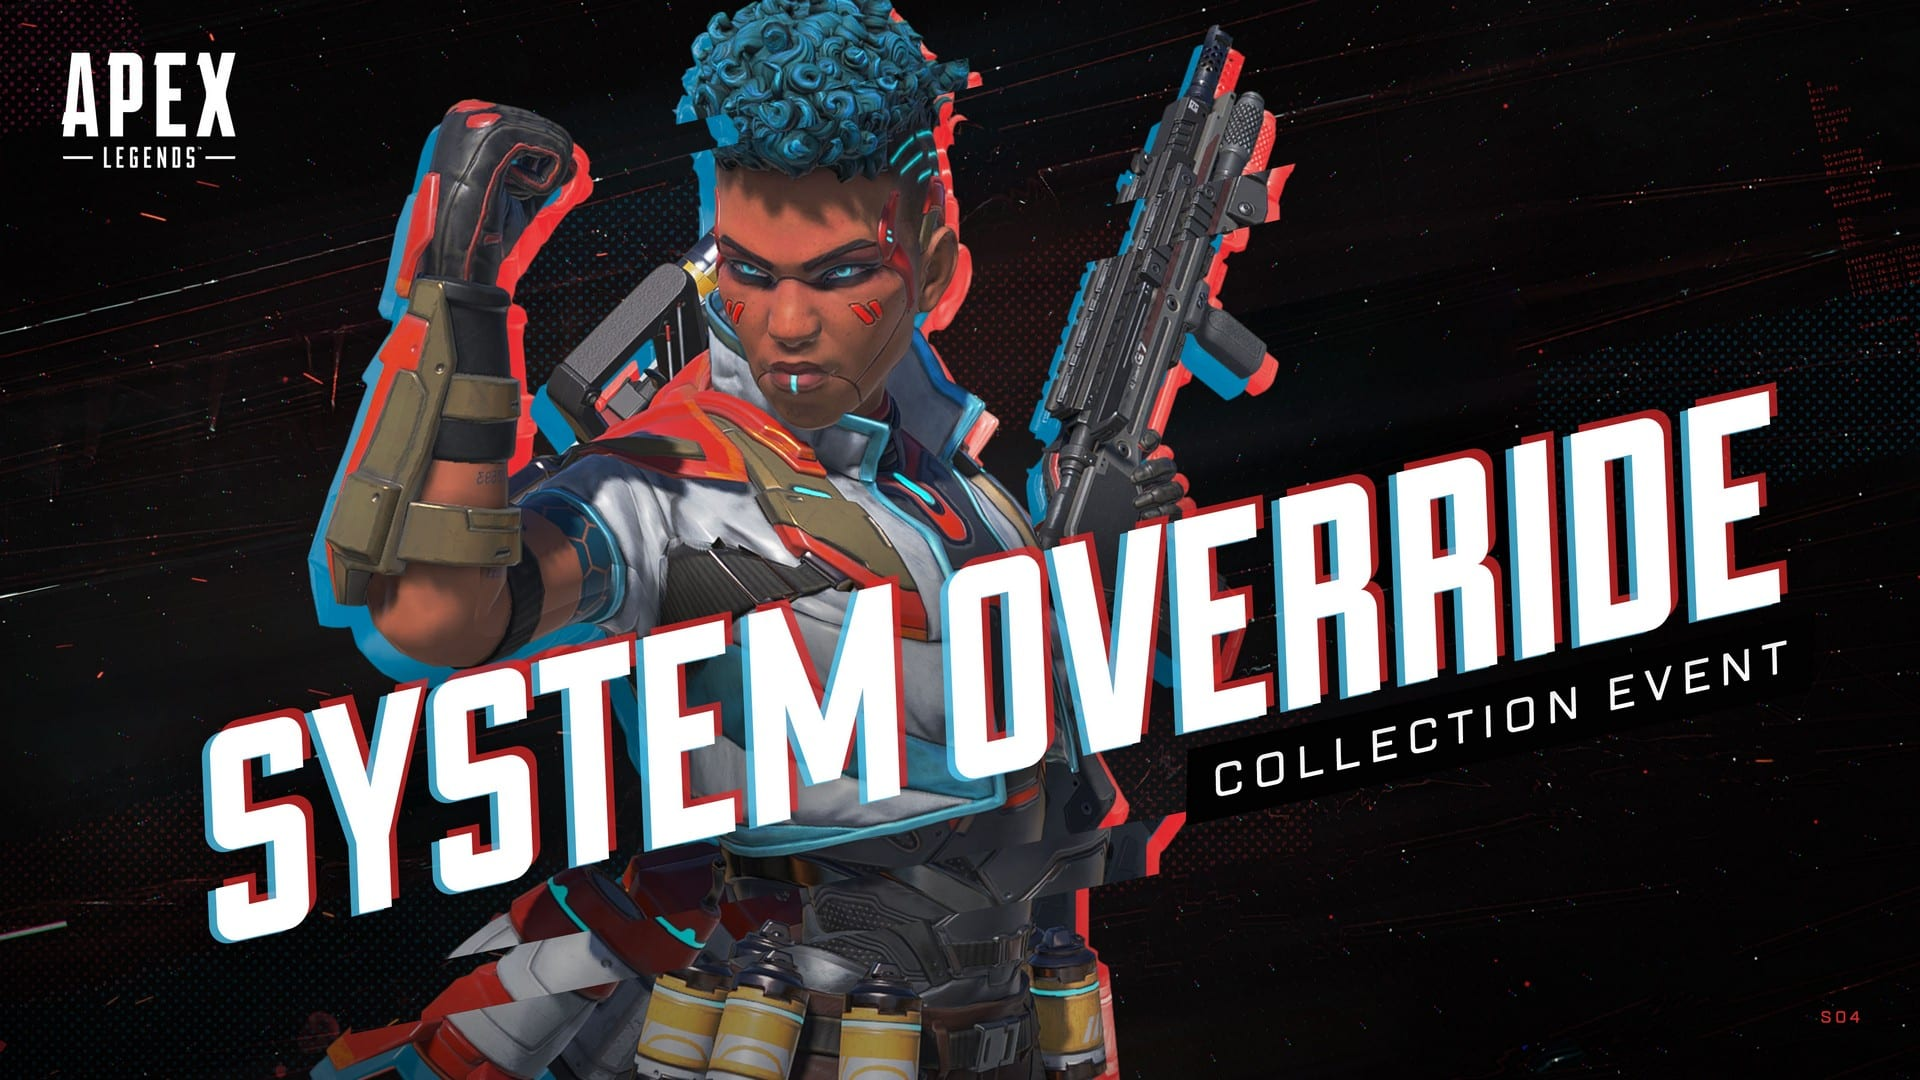 Apex Legends System Override Collection Event Revealed – March 3-17